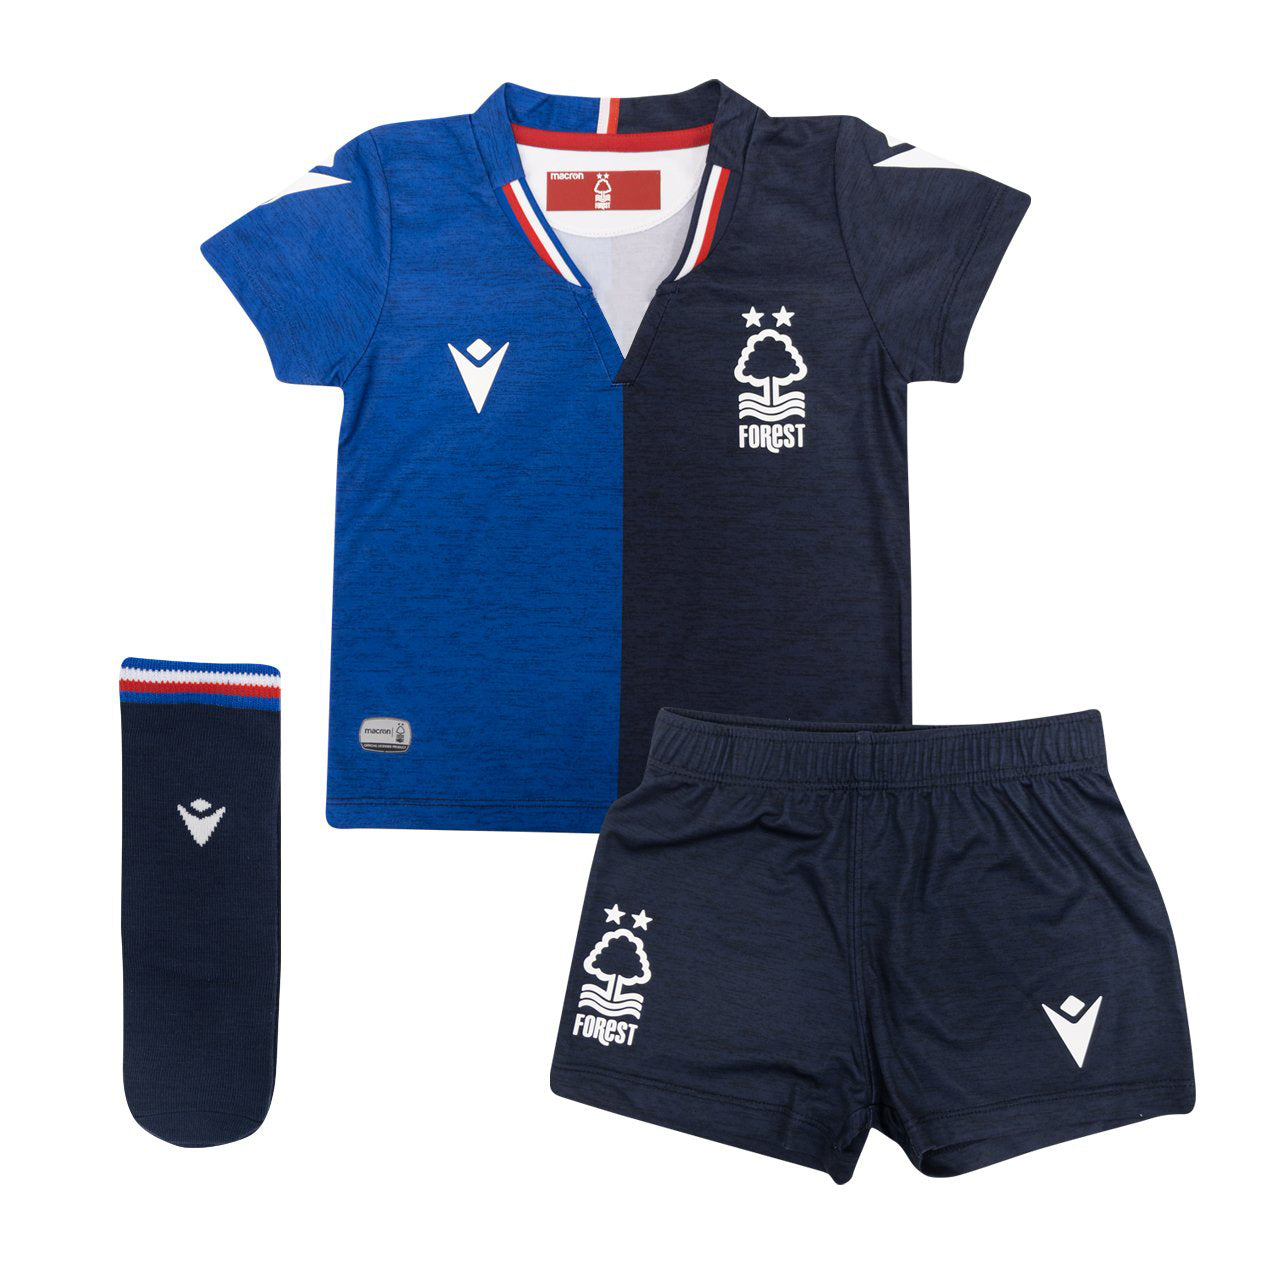 NFFC Infant Away Kit 2019/20